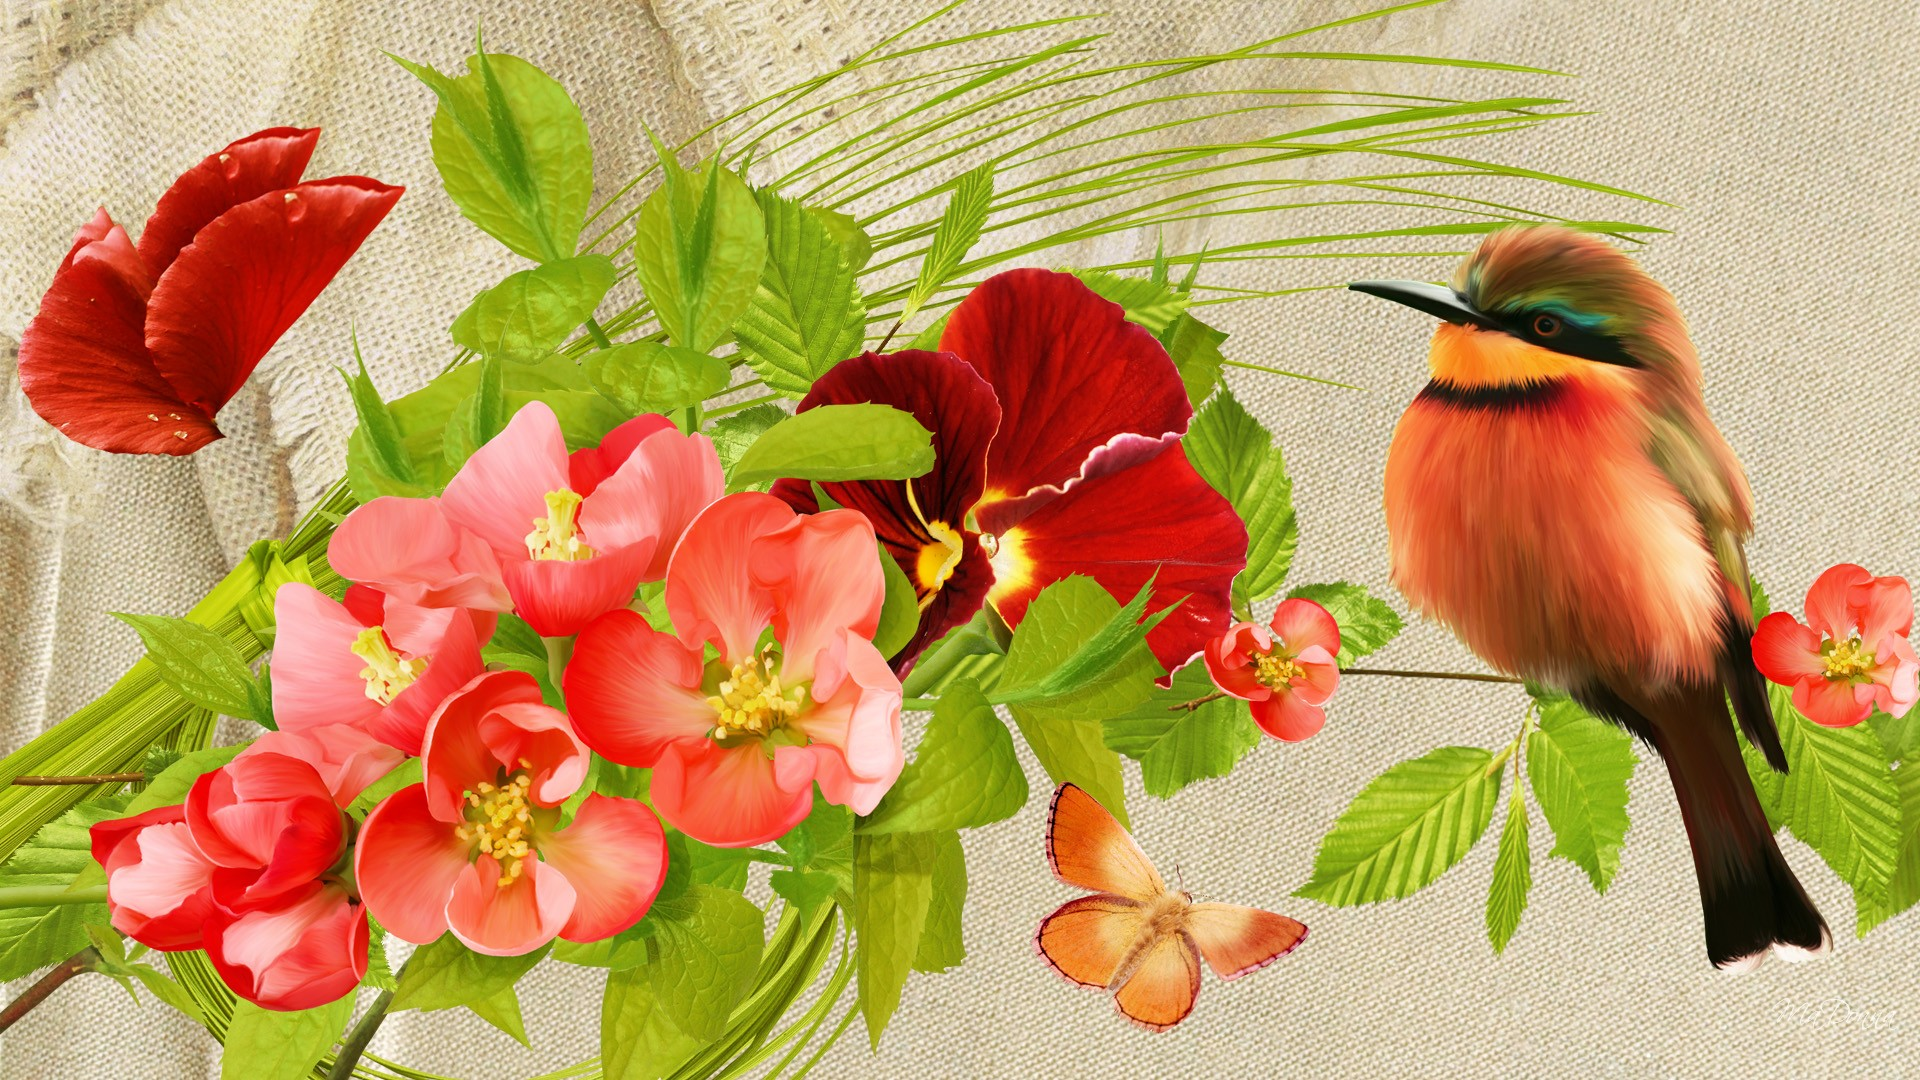 Pretty Birds Flowers wallpaper   ForWallpapercom 1920x1080